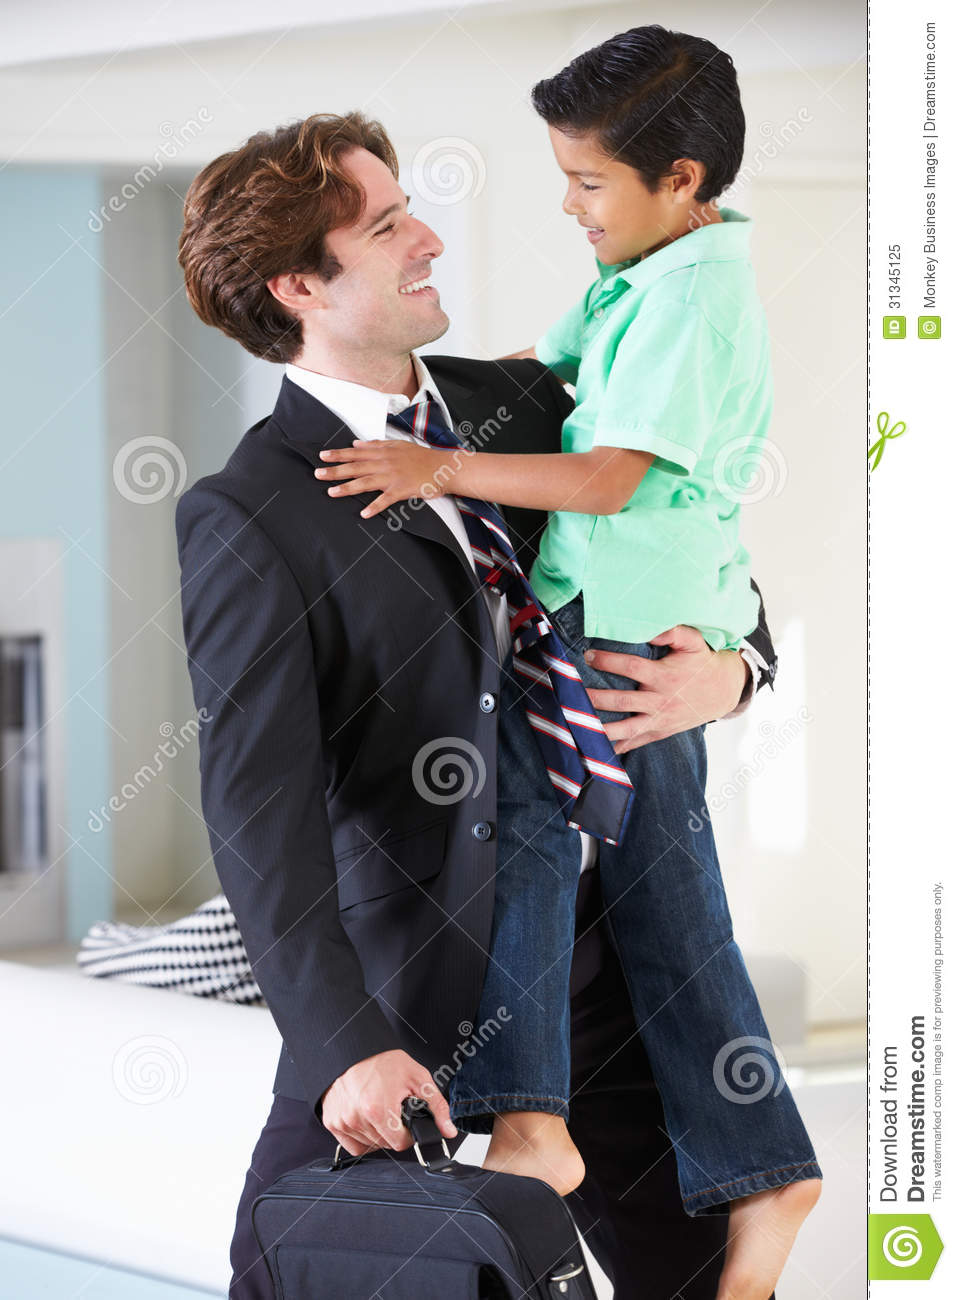 Son Greets Father On Return From Work